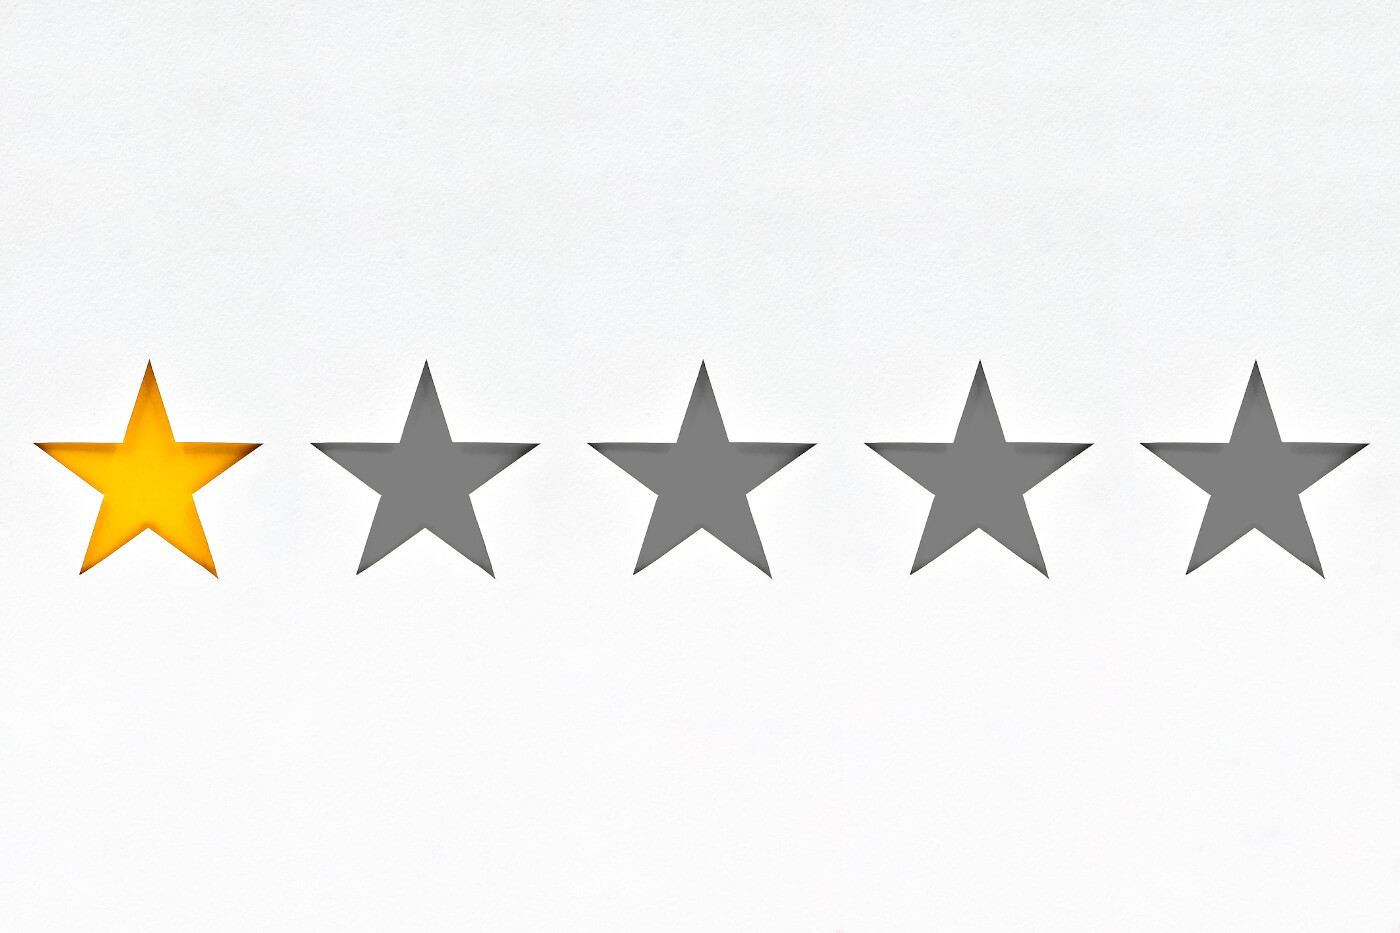 An image of 5 stars with one filled in yellow to show a 1 star review